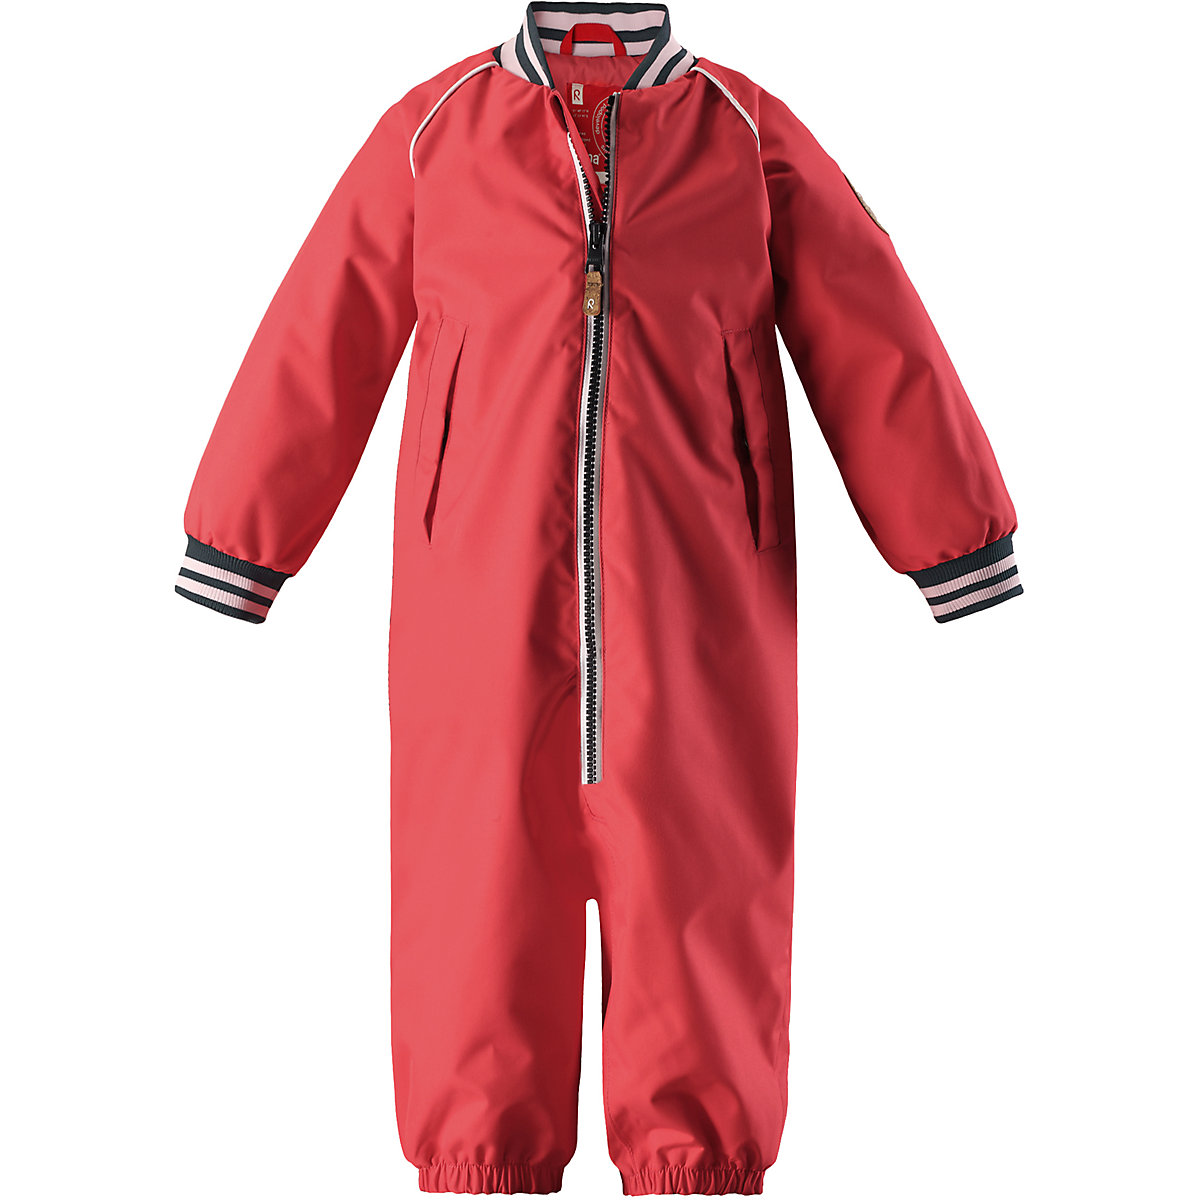 REIMA Overalls  7628255 for boys and girls polyester winter reima overalls 7628255 for boys and girls polyester winter